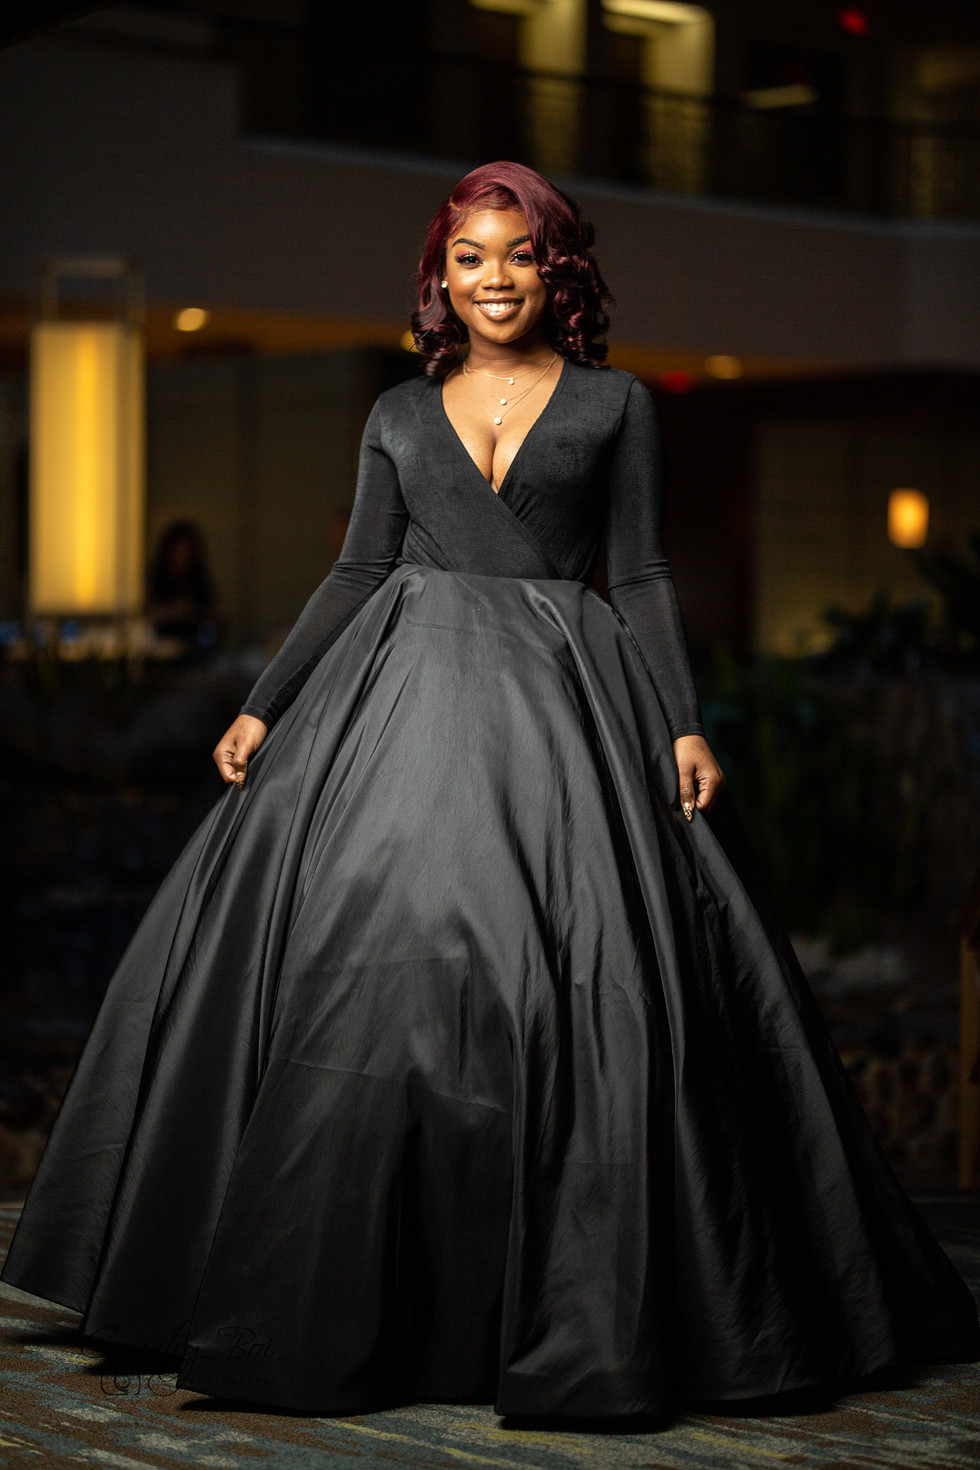 African american young woman in Prom dress in Hiltion hotel Gaslamp San Diego CA Ridgecrest Countryboiphotography.com